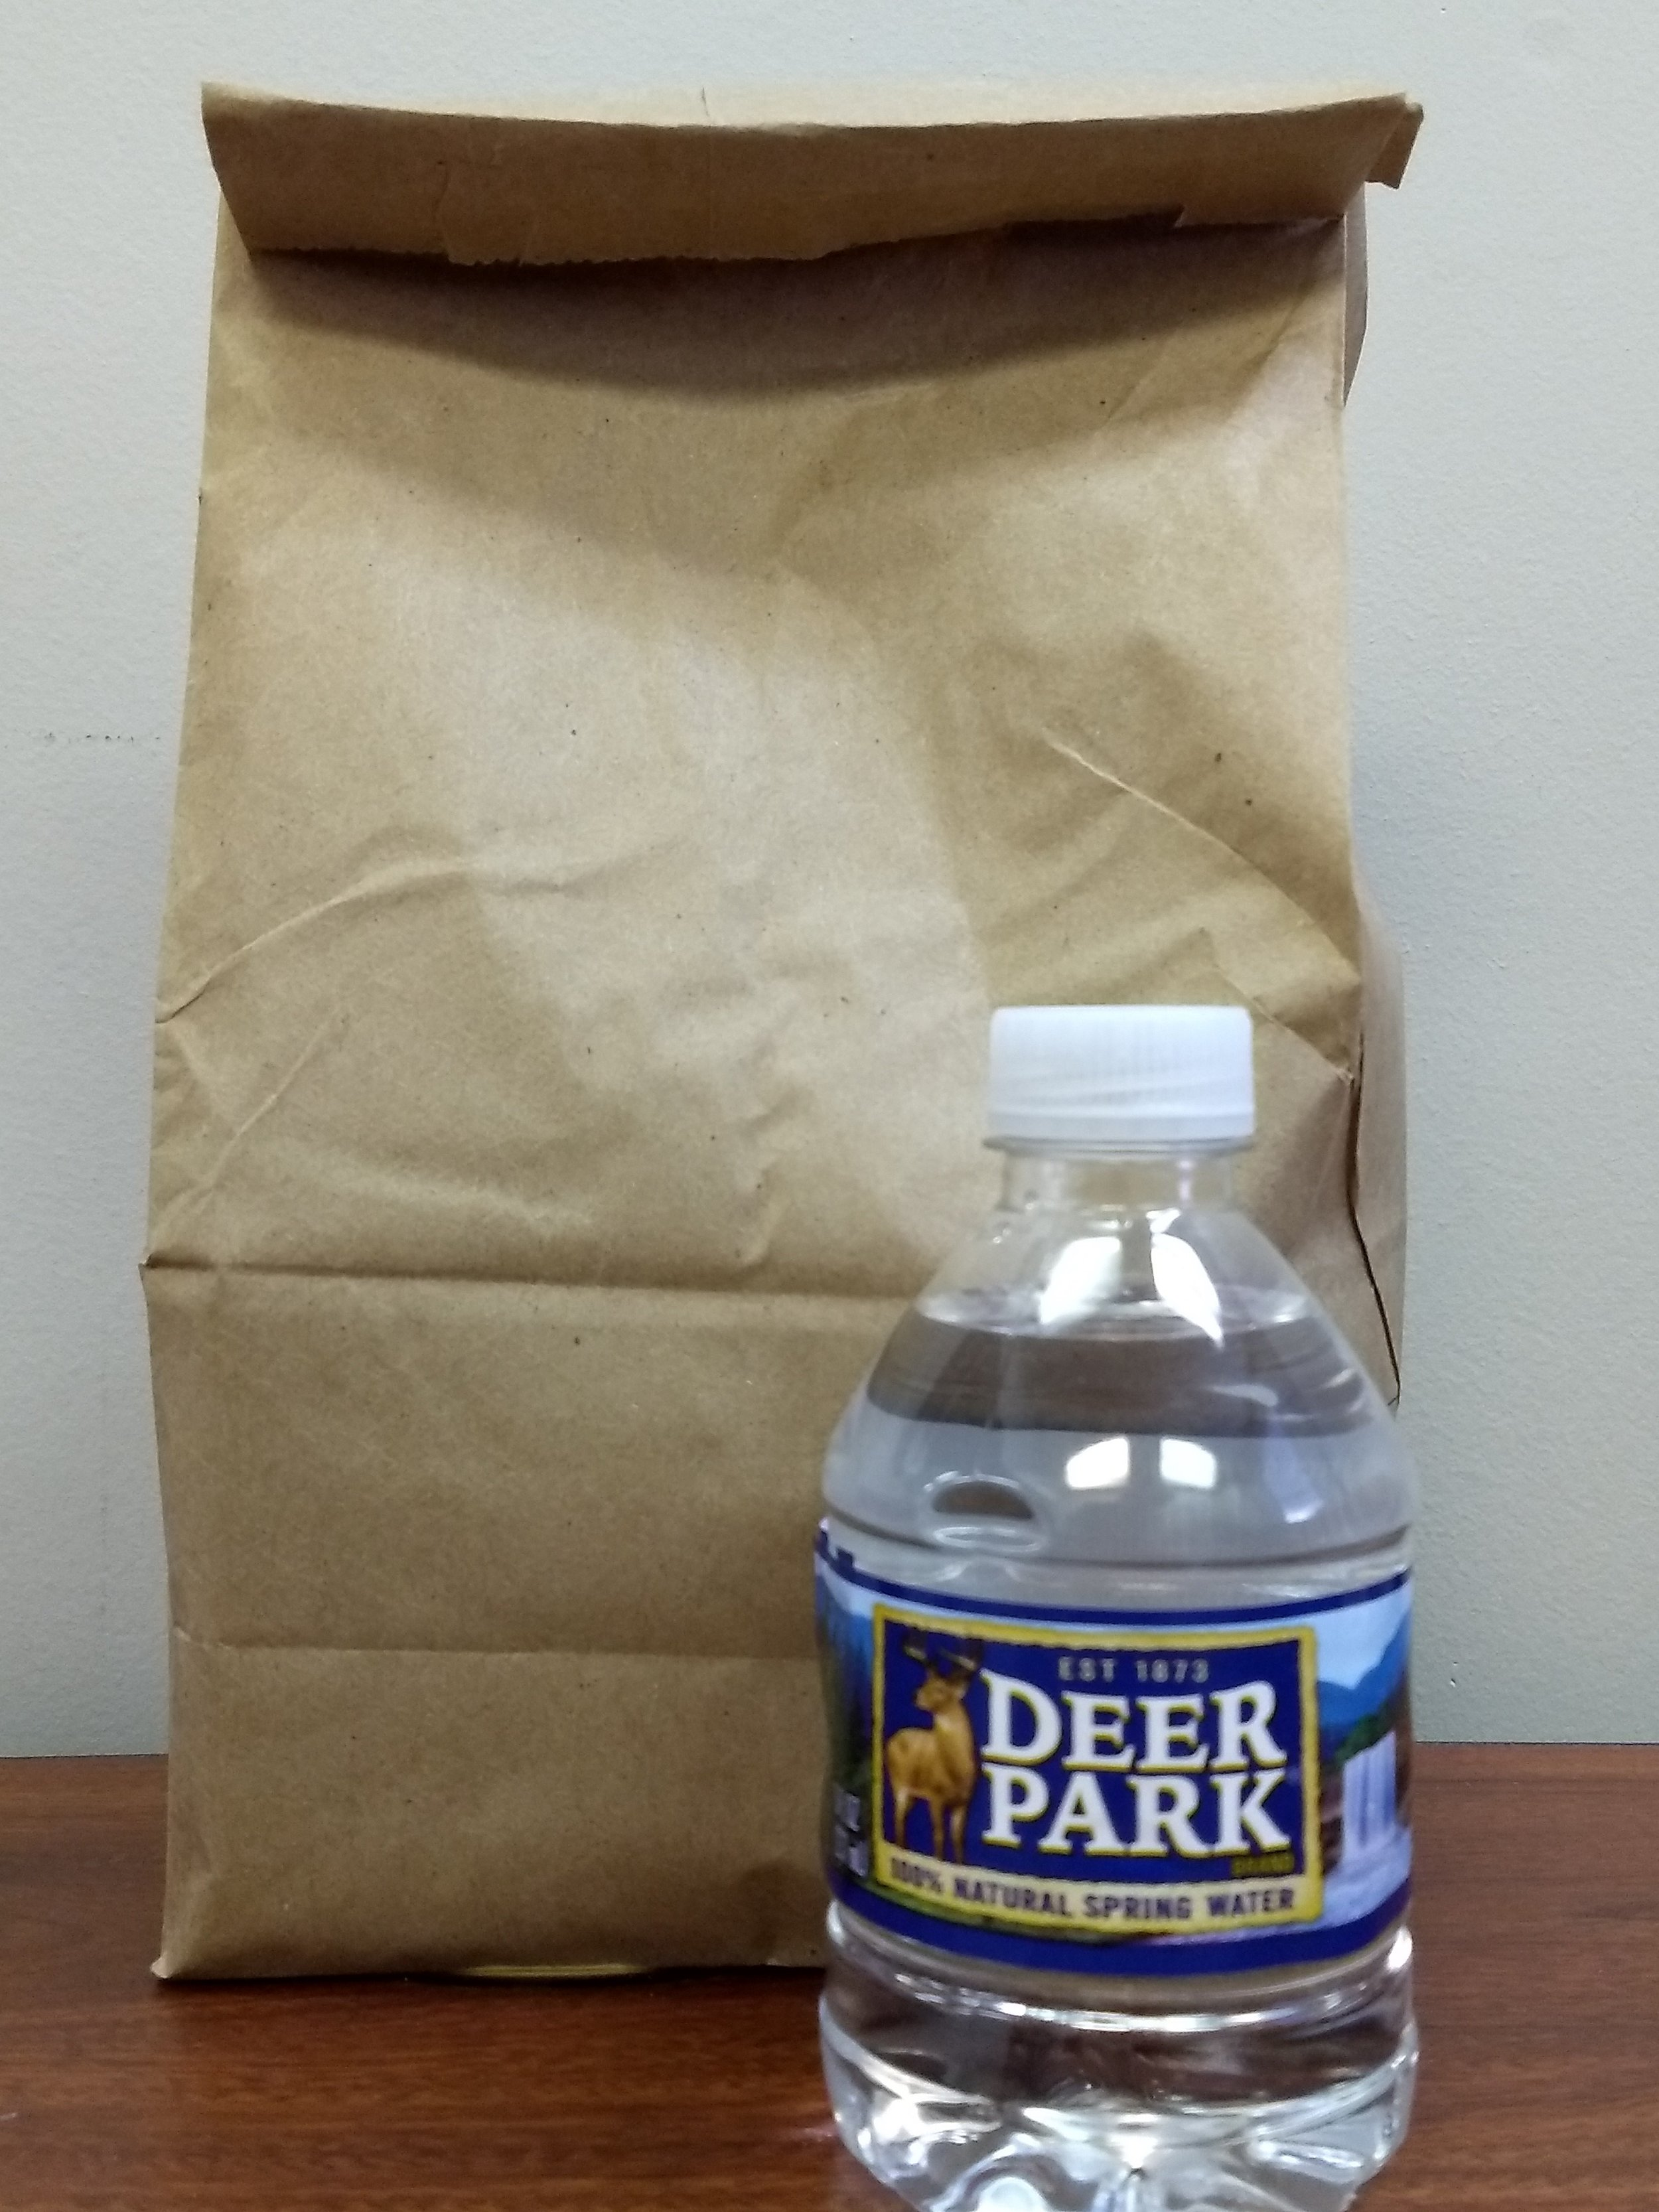 Sack Lunches for people that need one - Deer Park provides lunches every weekday for anyone that stops by the church and needs something to eat.